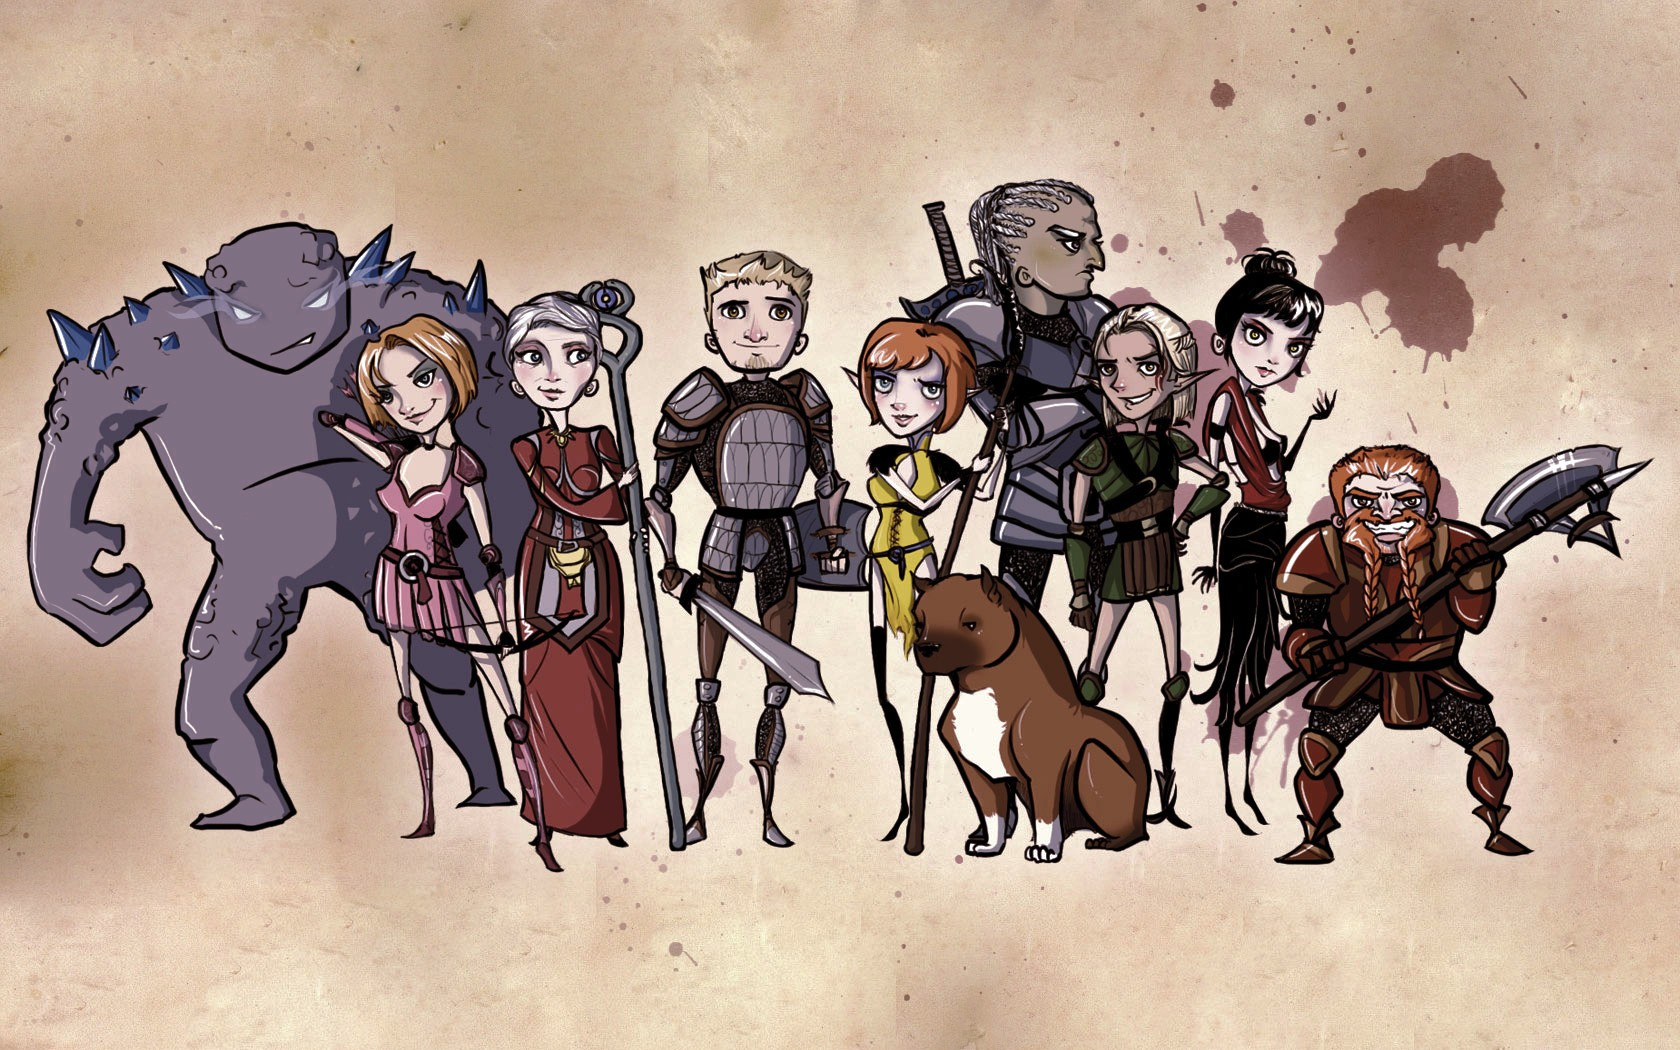 Wallpaper Chibi Dragon Age Origins Group 357379 Hd Wallpaper Backgrounds Download